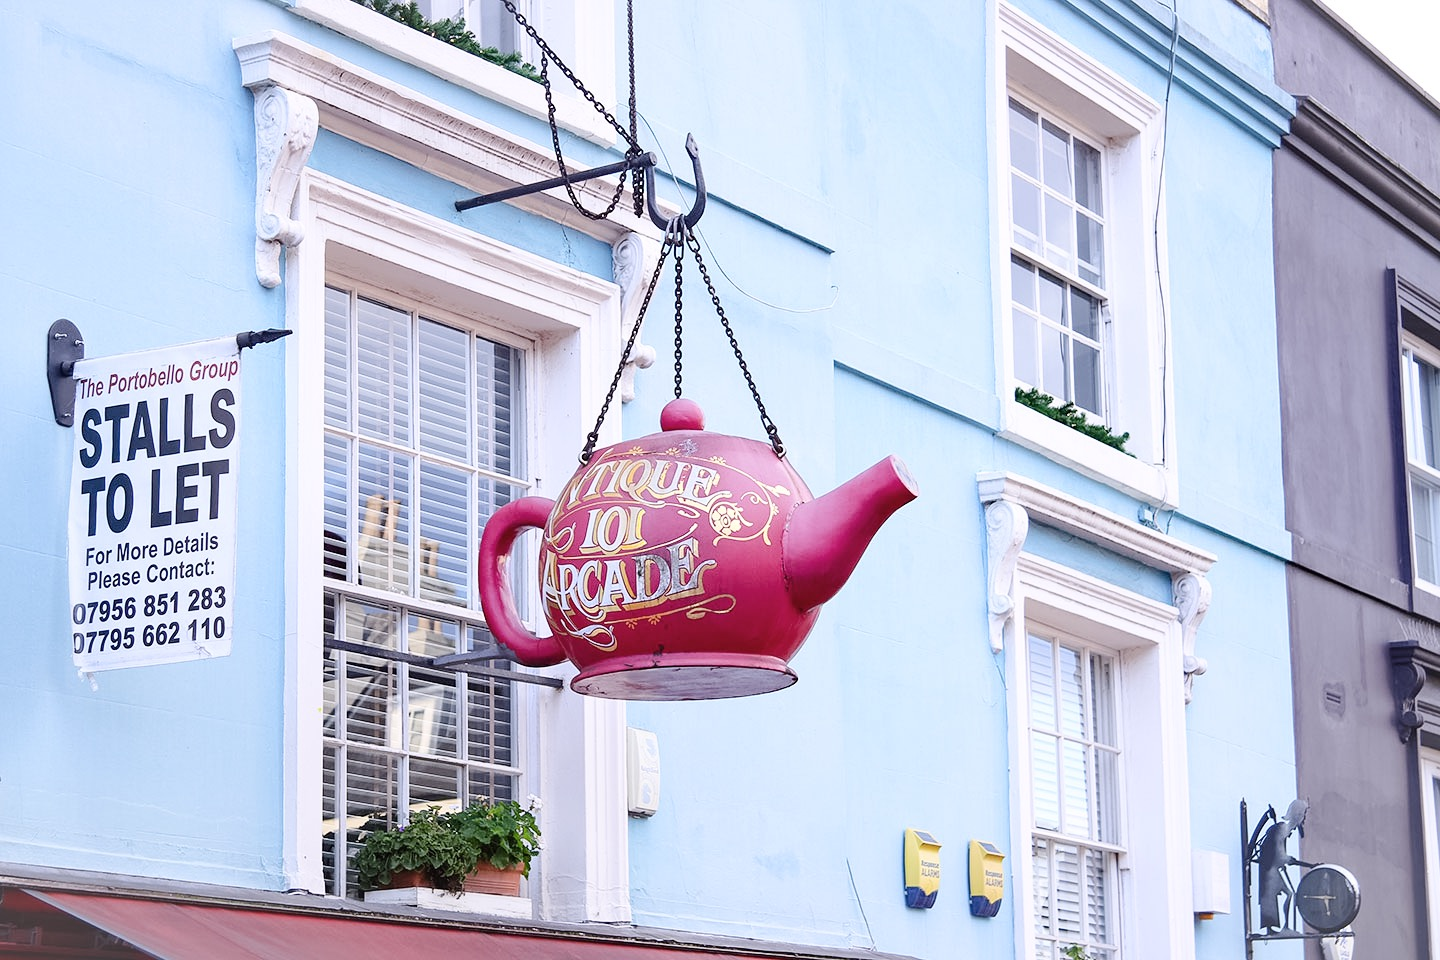 elodie_article_londres_theiere-notting-hill